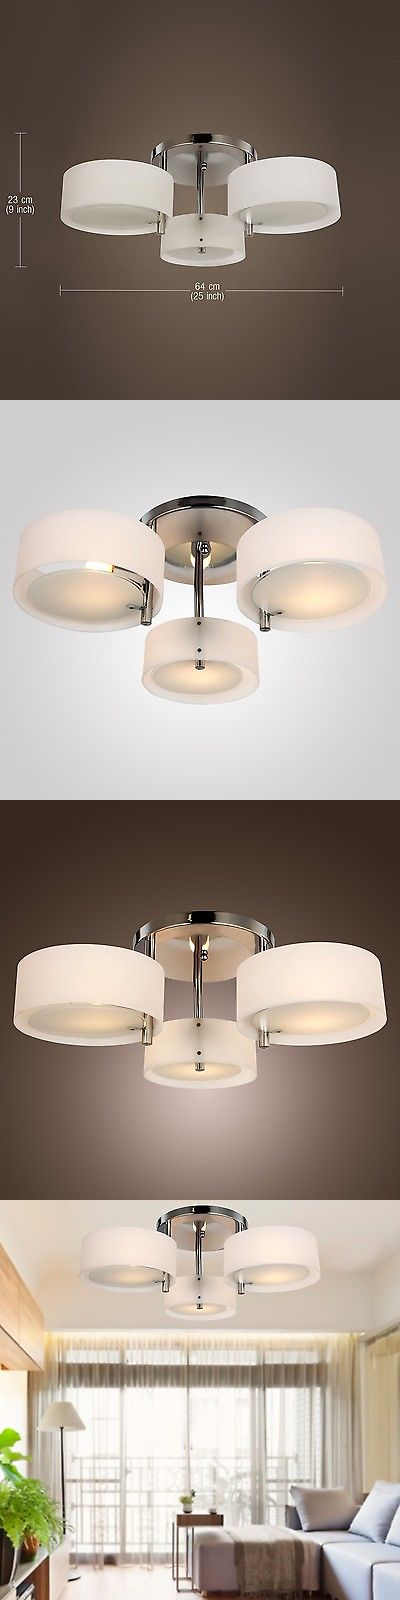 Chandeliers and Ceiling Fixtures 117503: Modern Acrylic Chandelier ...